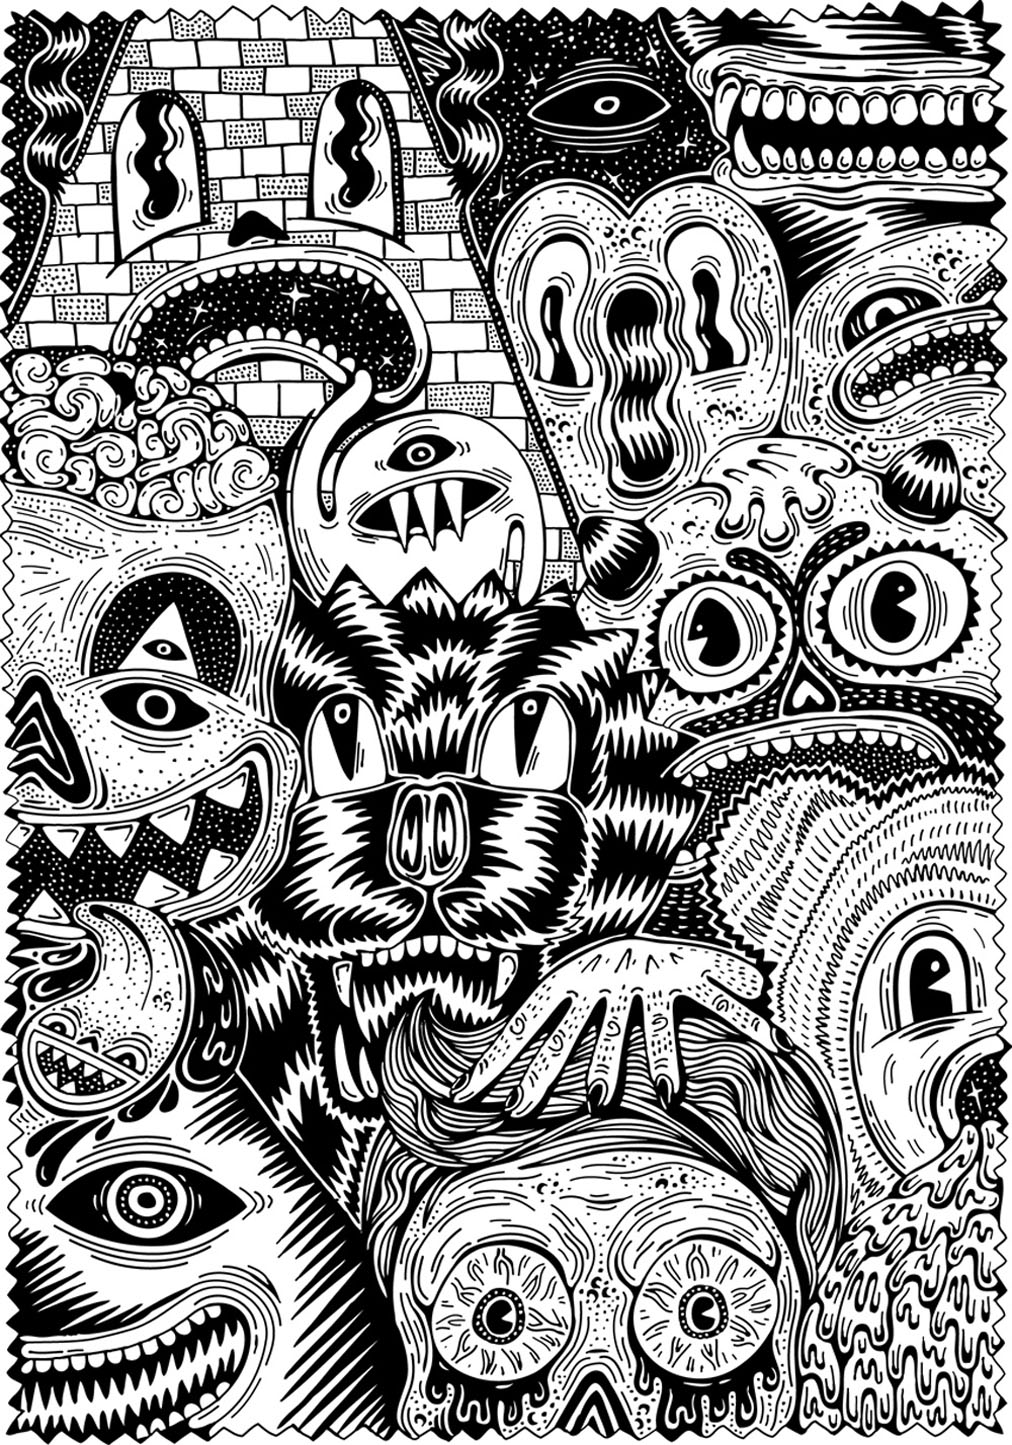 Color this various monsters before they come to haunt your nights